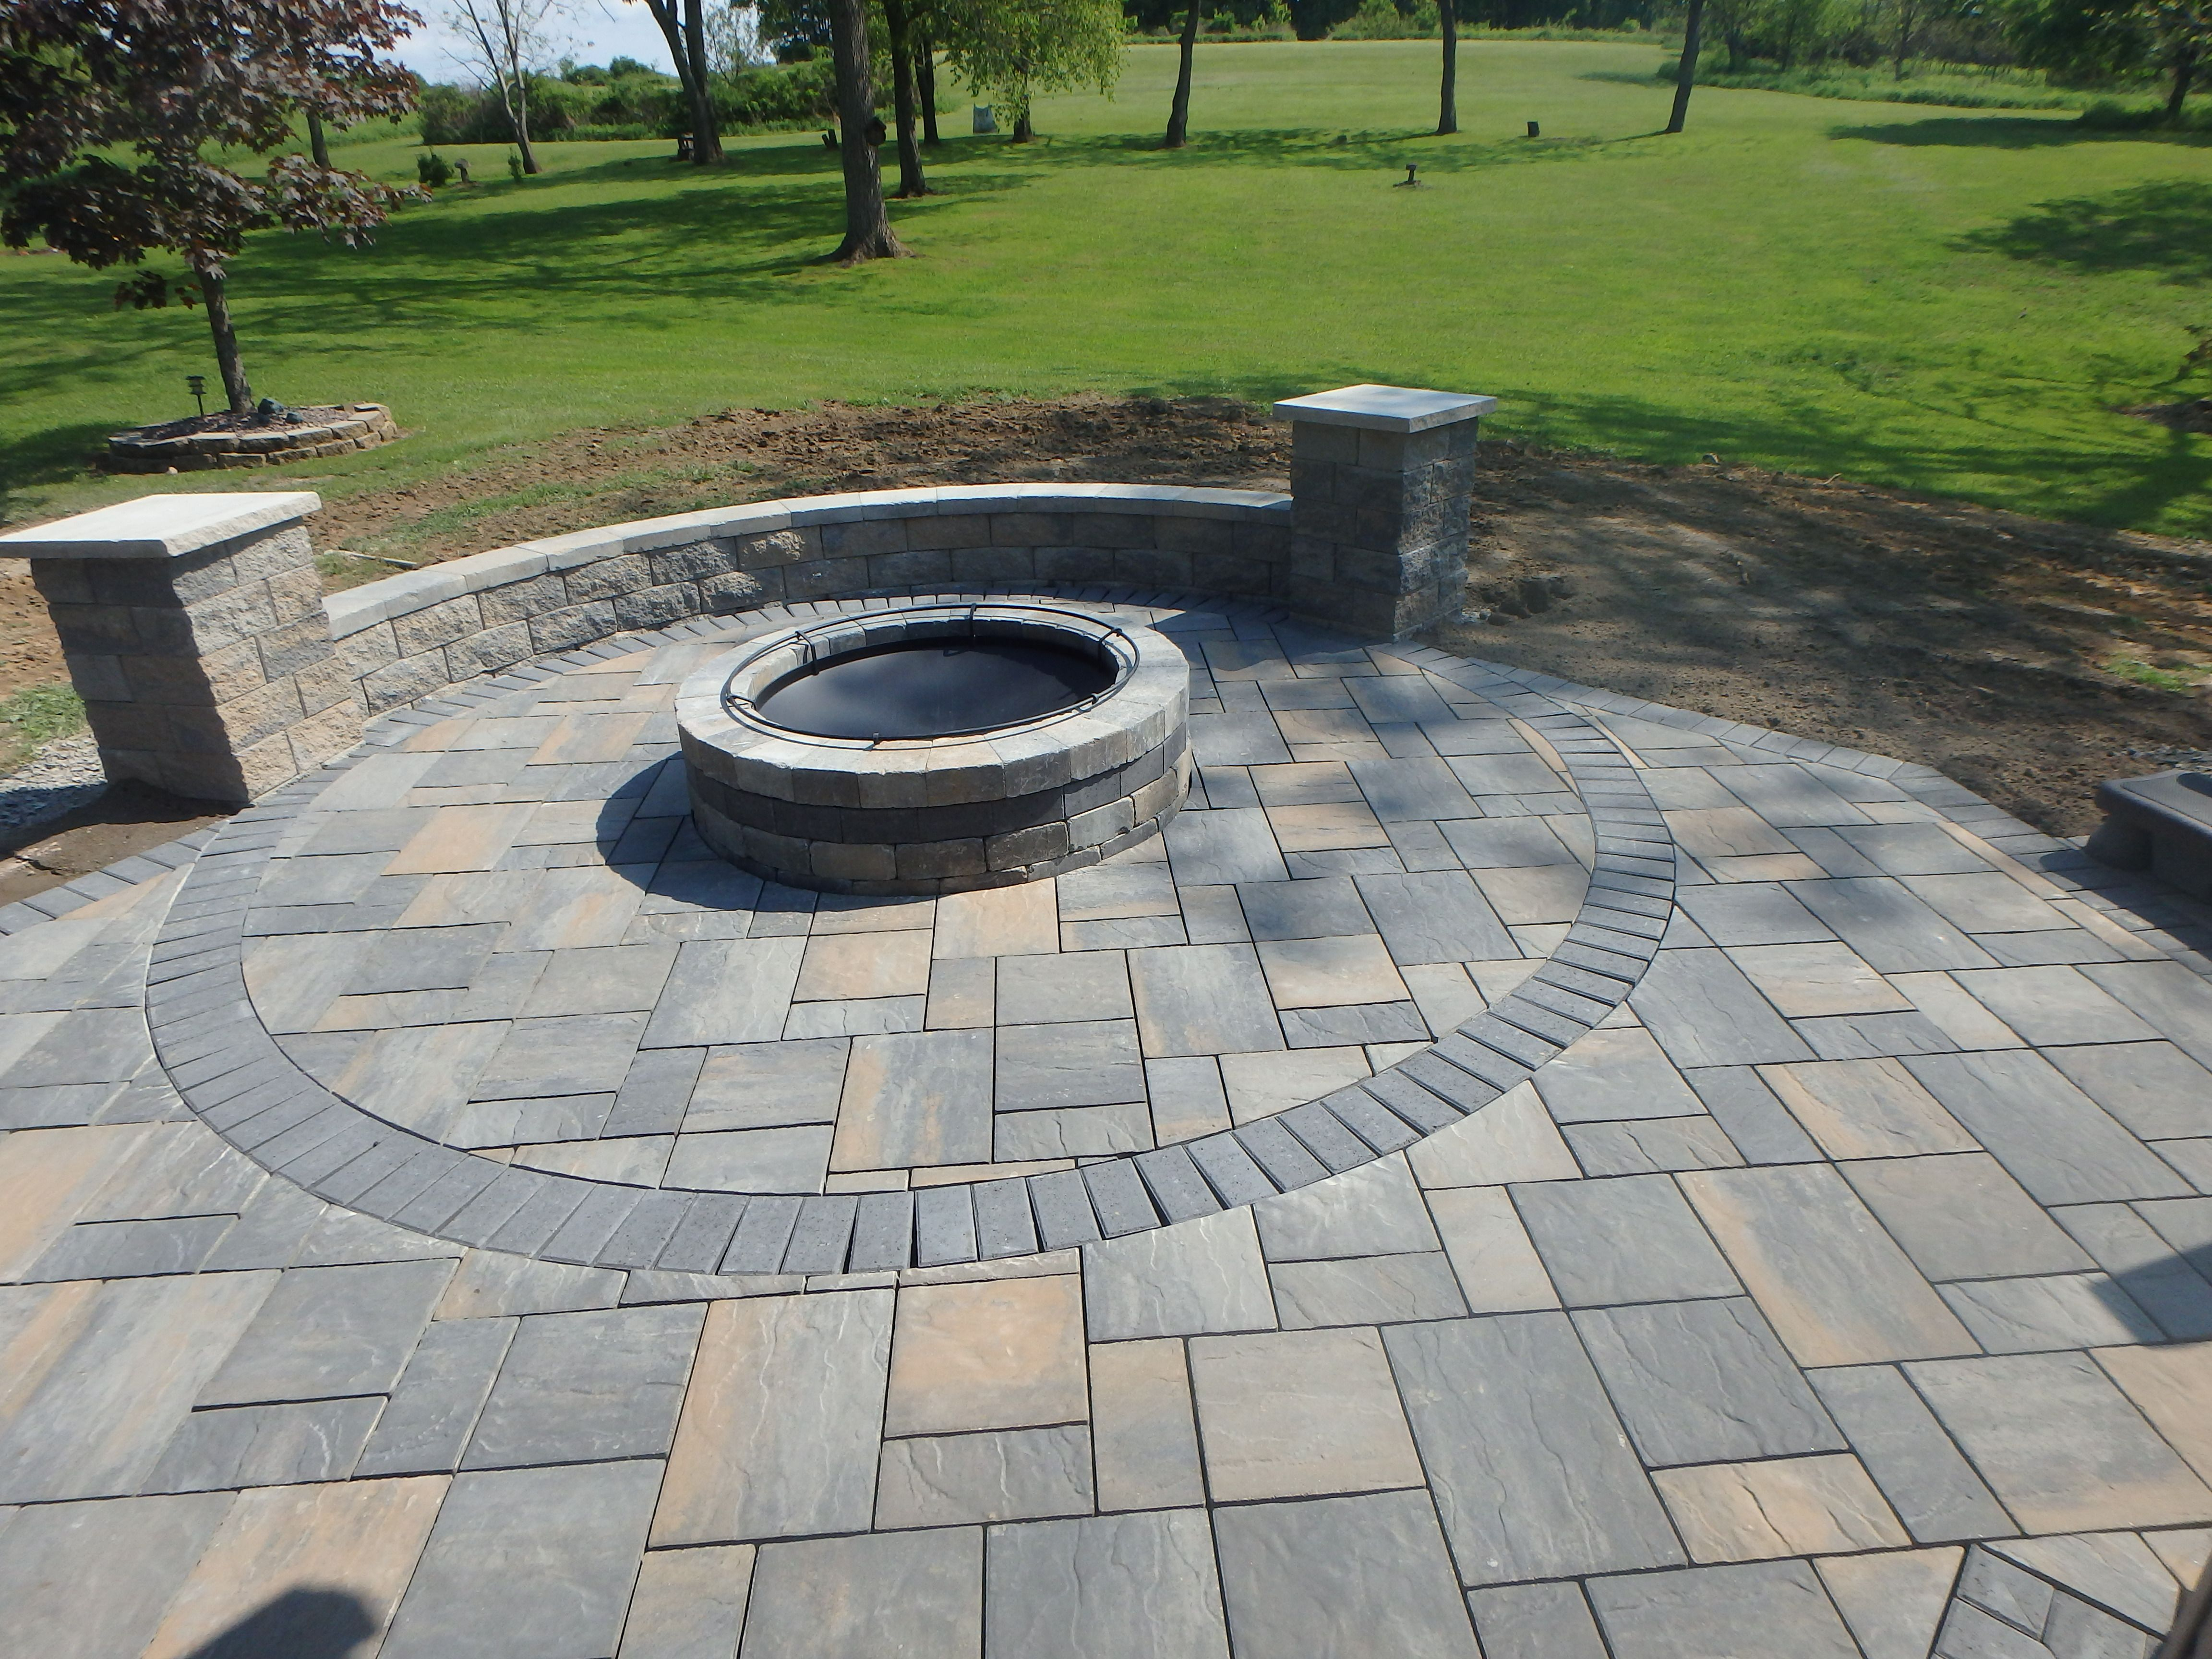 Paver Patio With Charcoal Circle Inlay And Matching Charcoal Accent Strip In Fire Pit Patio Stones Fire Pit Backyard Outdoor Porch